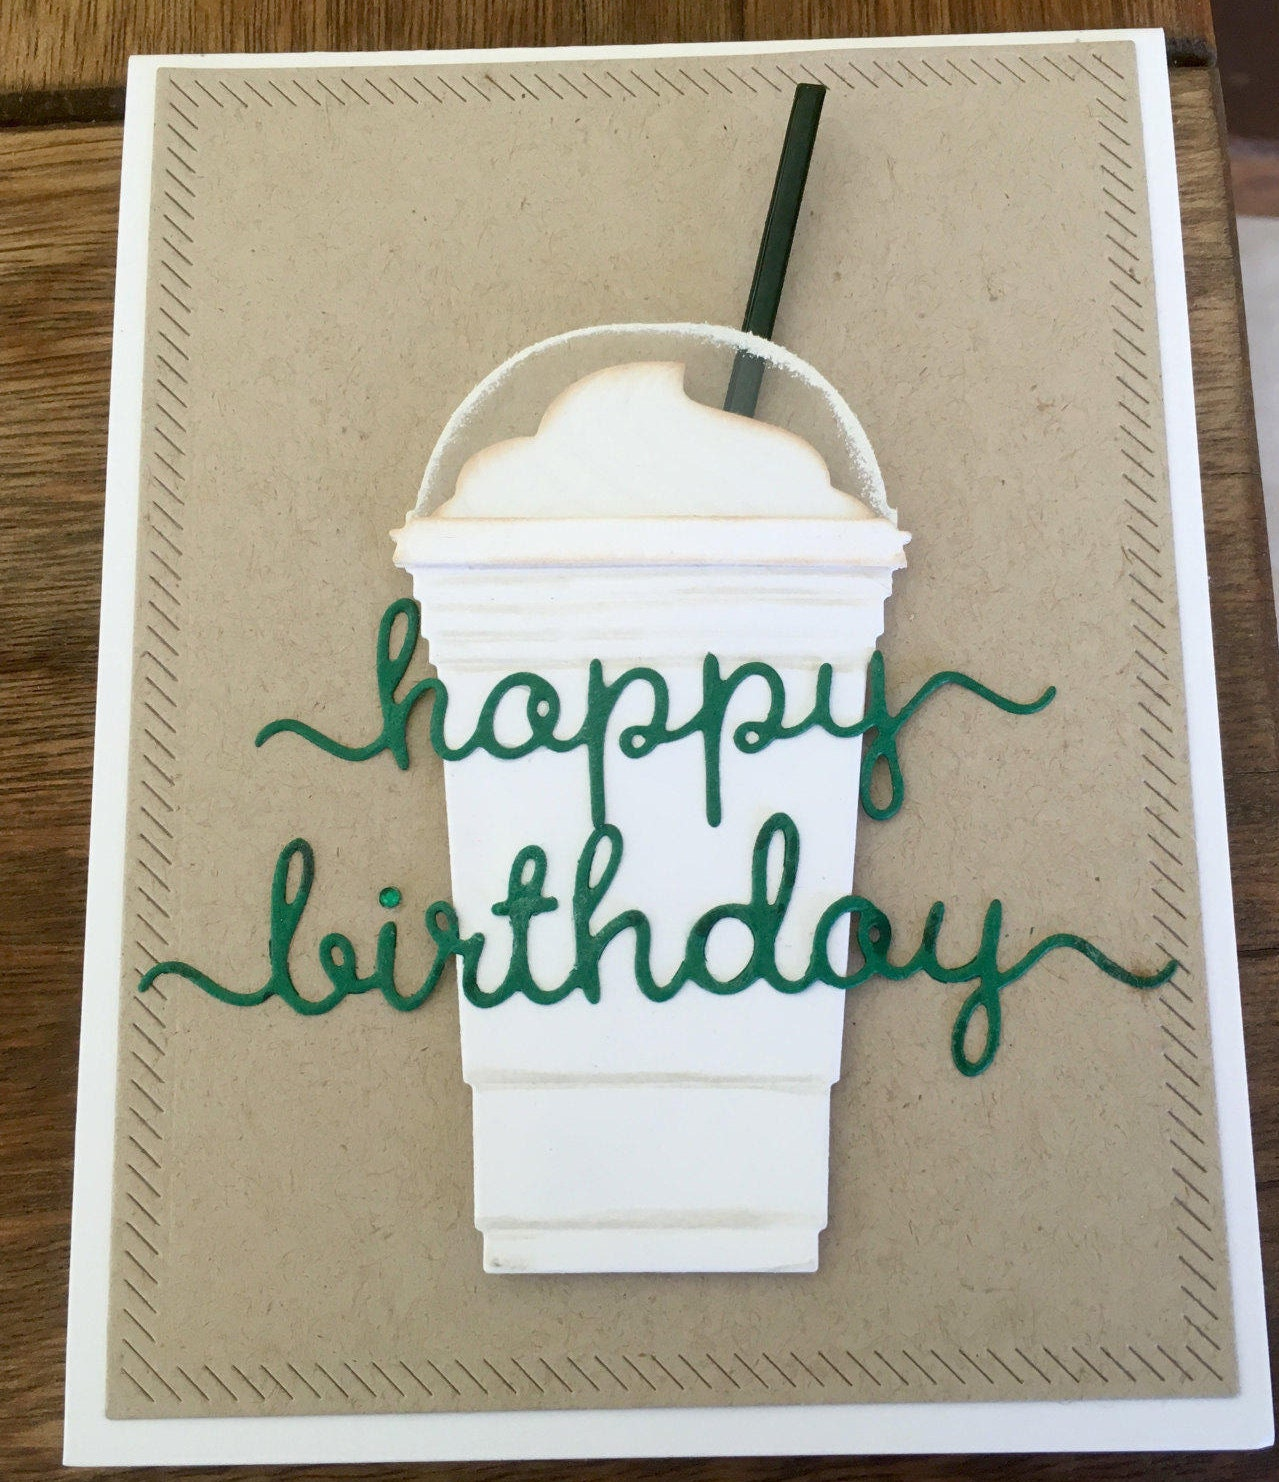 Starbucks Happy Birthday Card With Gift Card Holder For A